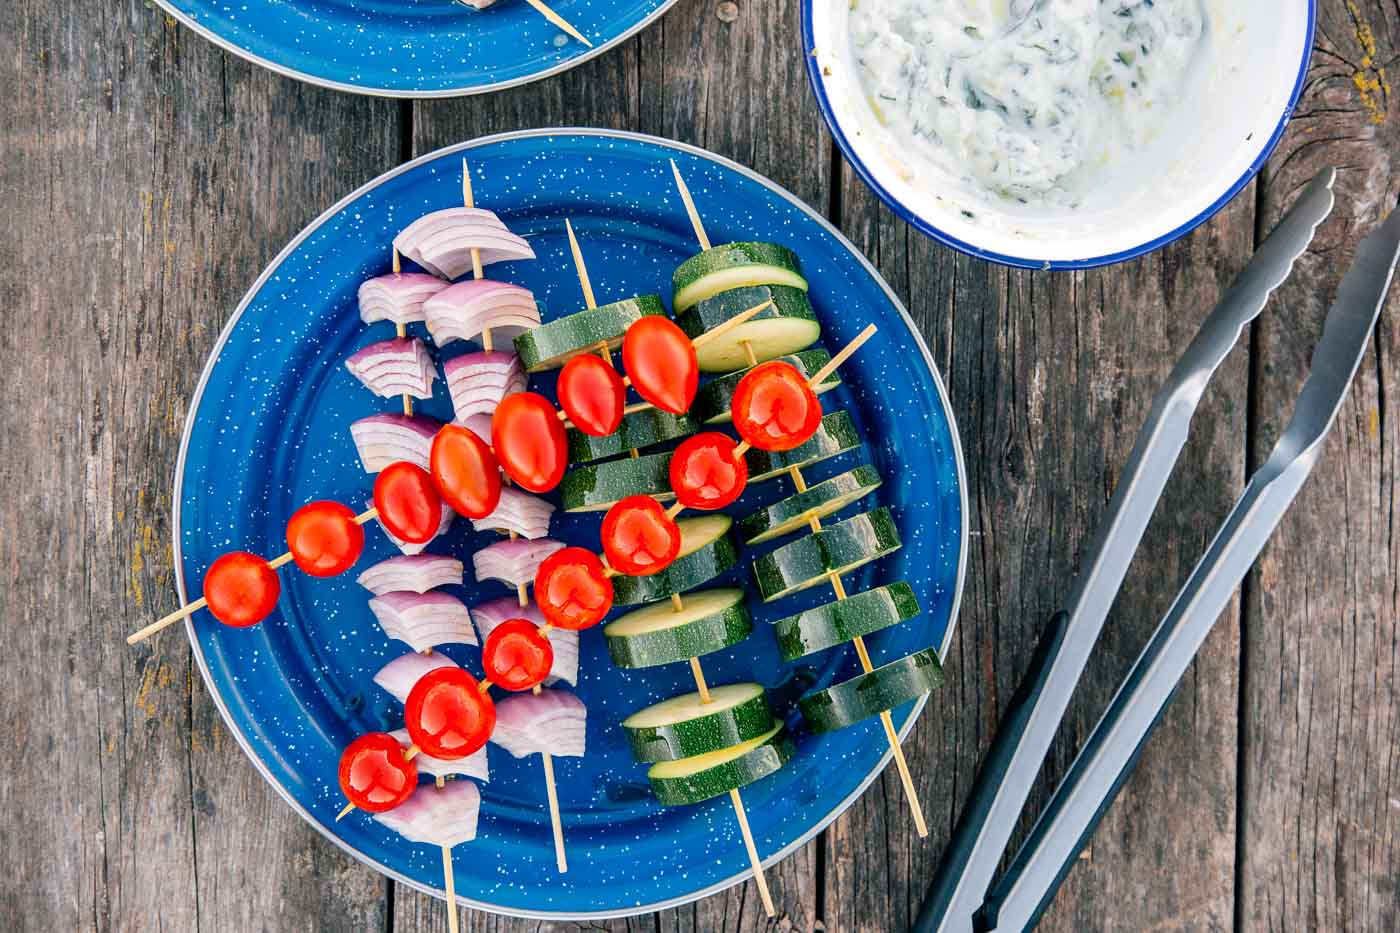 Tomatoes, red onion, and zucchini on skewers